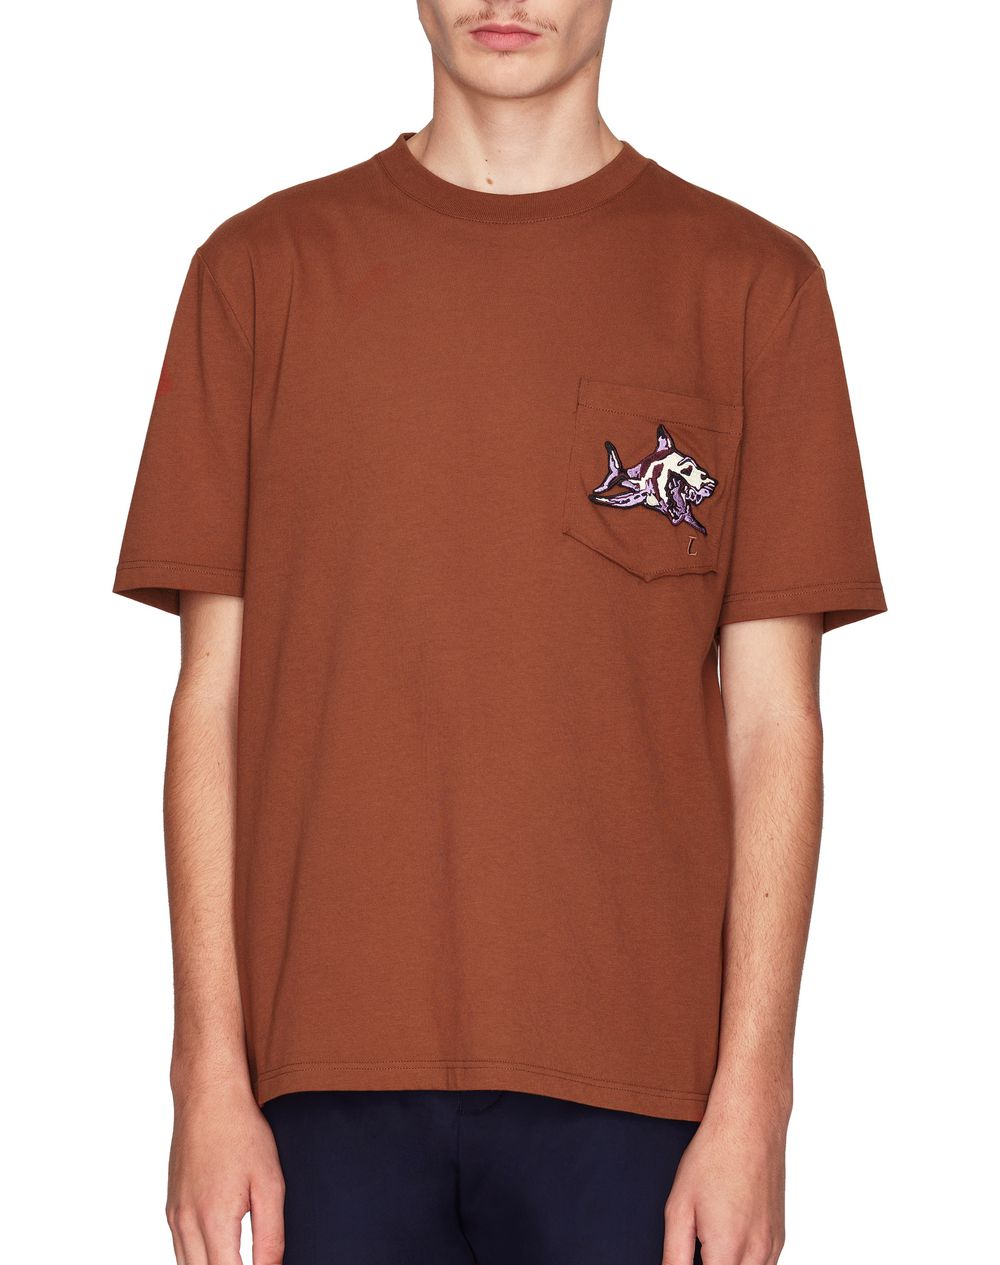 """L"" EMBROIDERED CAMEL-COLOURED T-SHIRT  - Lanvin"